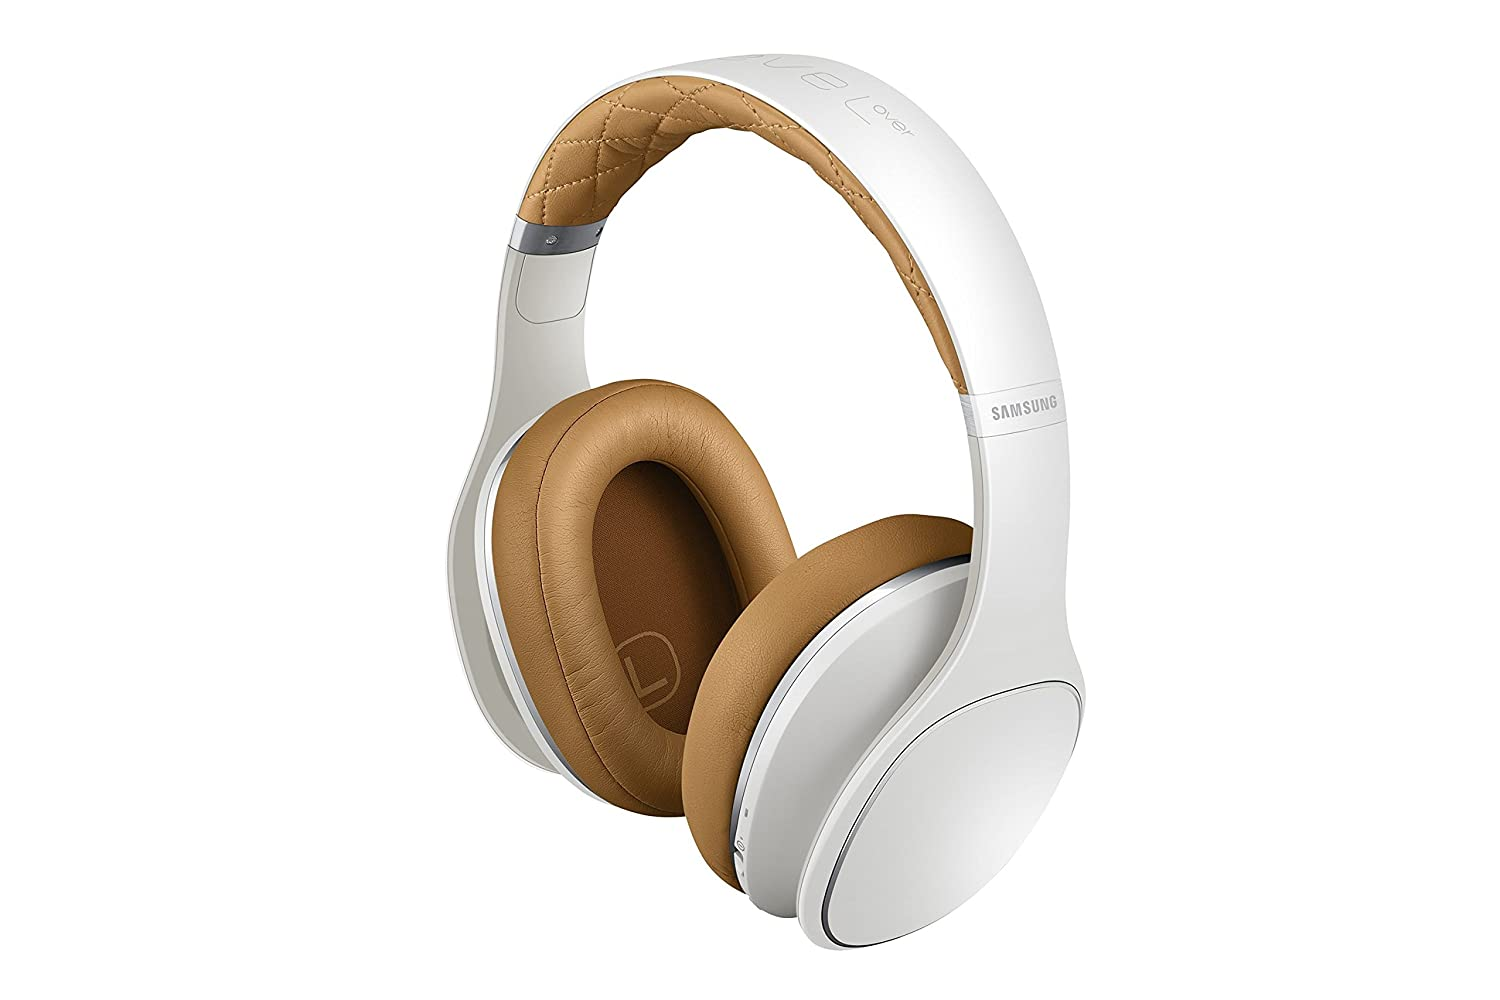 Samsung Wireless Noise Cancelling Headphones